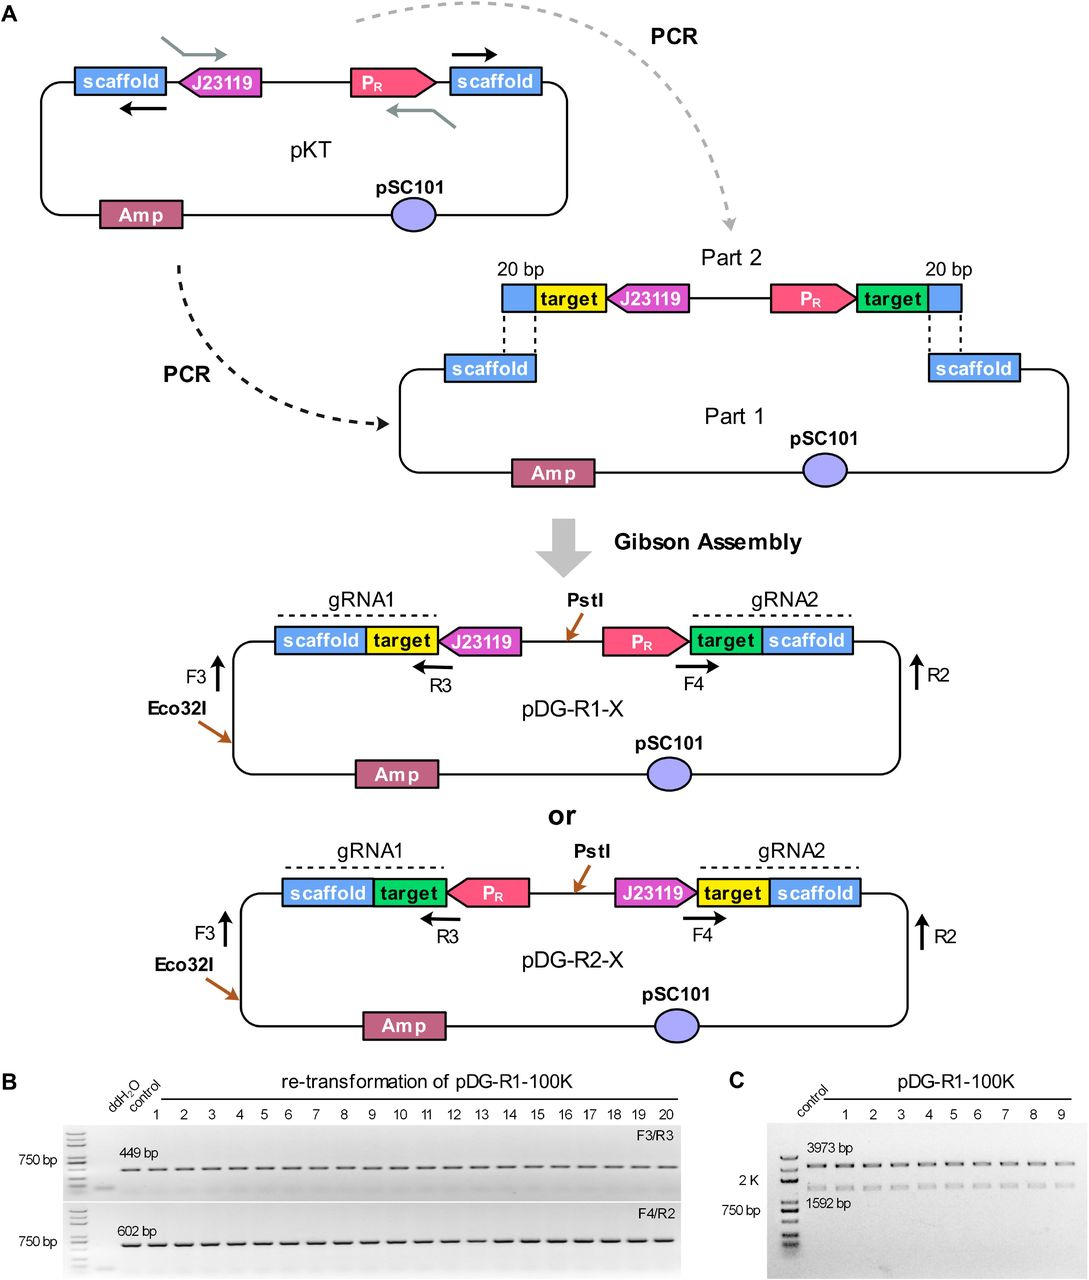 The design and stability of RPGPs pDG-R-100K in E. coli . A) The modular construction strategy of pDG-R-X series. pKT plasmid was designed for PCR amplification of DNA part 1 and part 2 series. DNA part 1 which contained pDG-R-X backbone and two reversed repeated gRNA scaffolds was amplified by using only one prime. DNA part 2 contained two different promoters followed by a 20-bp target sequence respectively. For the PCR reaction, the 20-bp sequences specific for two targeted loci and another 20-bp overlap sequences for assembly were embedded in primers as a part of insert. Gibson Assembly method was preformed to assemble these parts into pDG-R1-X or pDG-R2-X series. B) Representative PCR results of pDG-R1-100K after re-transformation process in E. coli . C) The double restriction enzyme digestion analyses of pDG-R1-100K and its derivations.